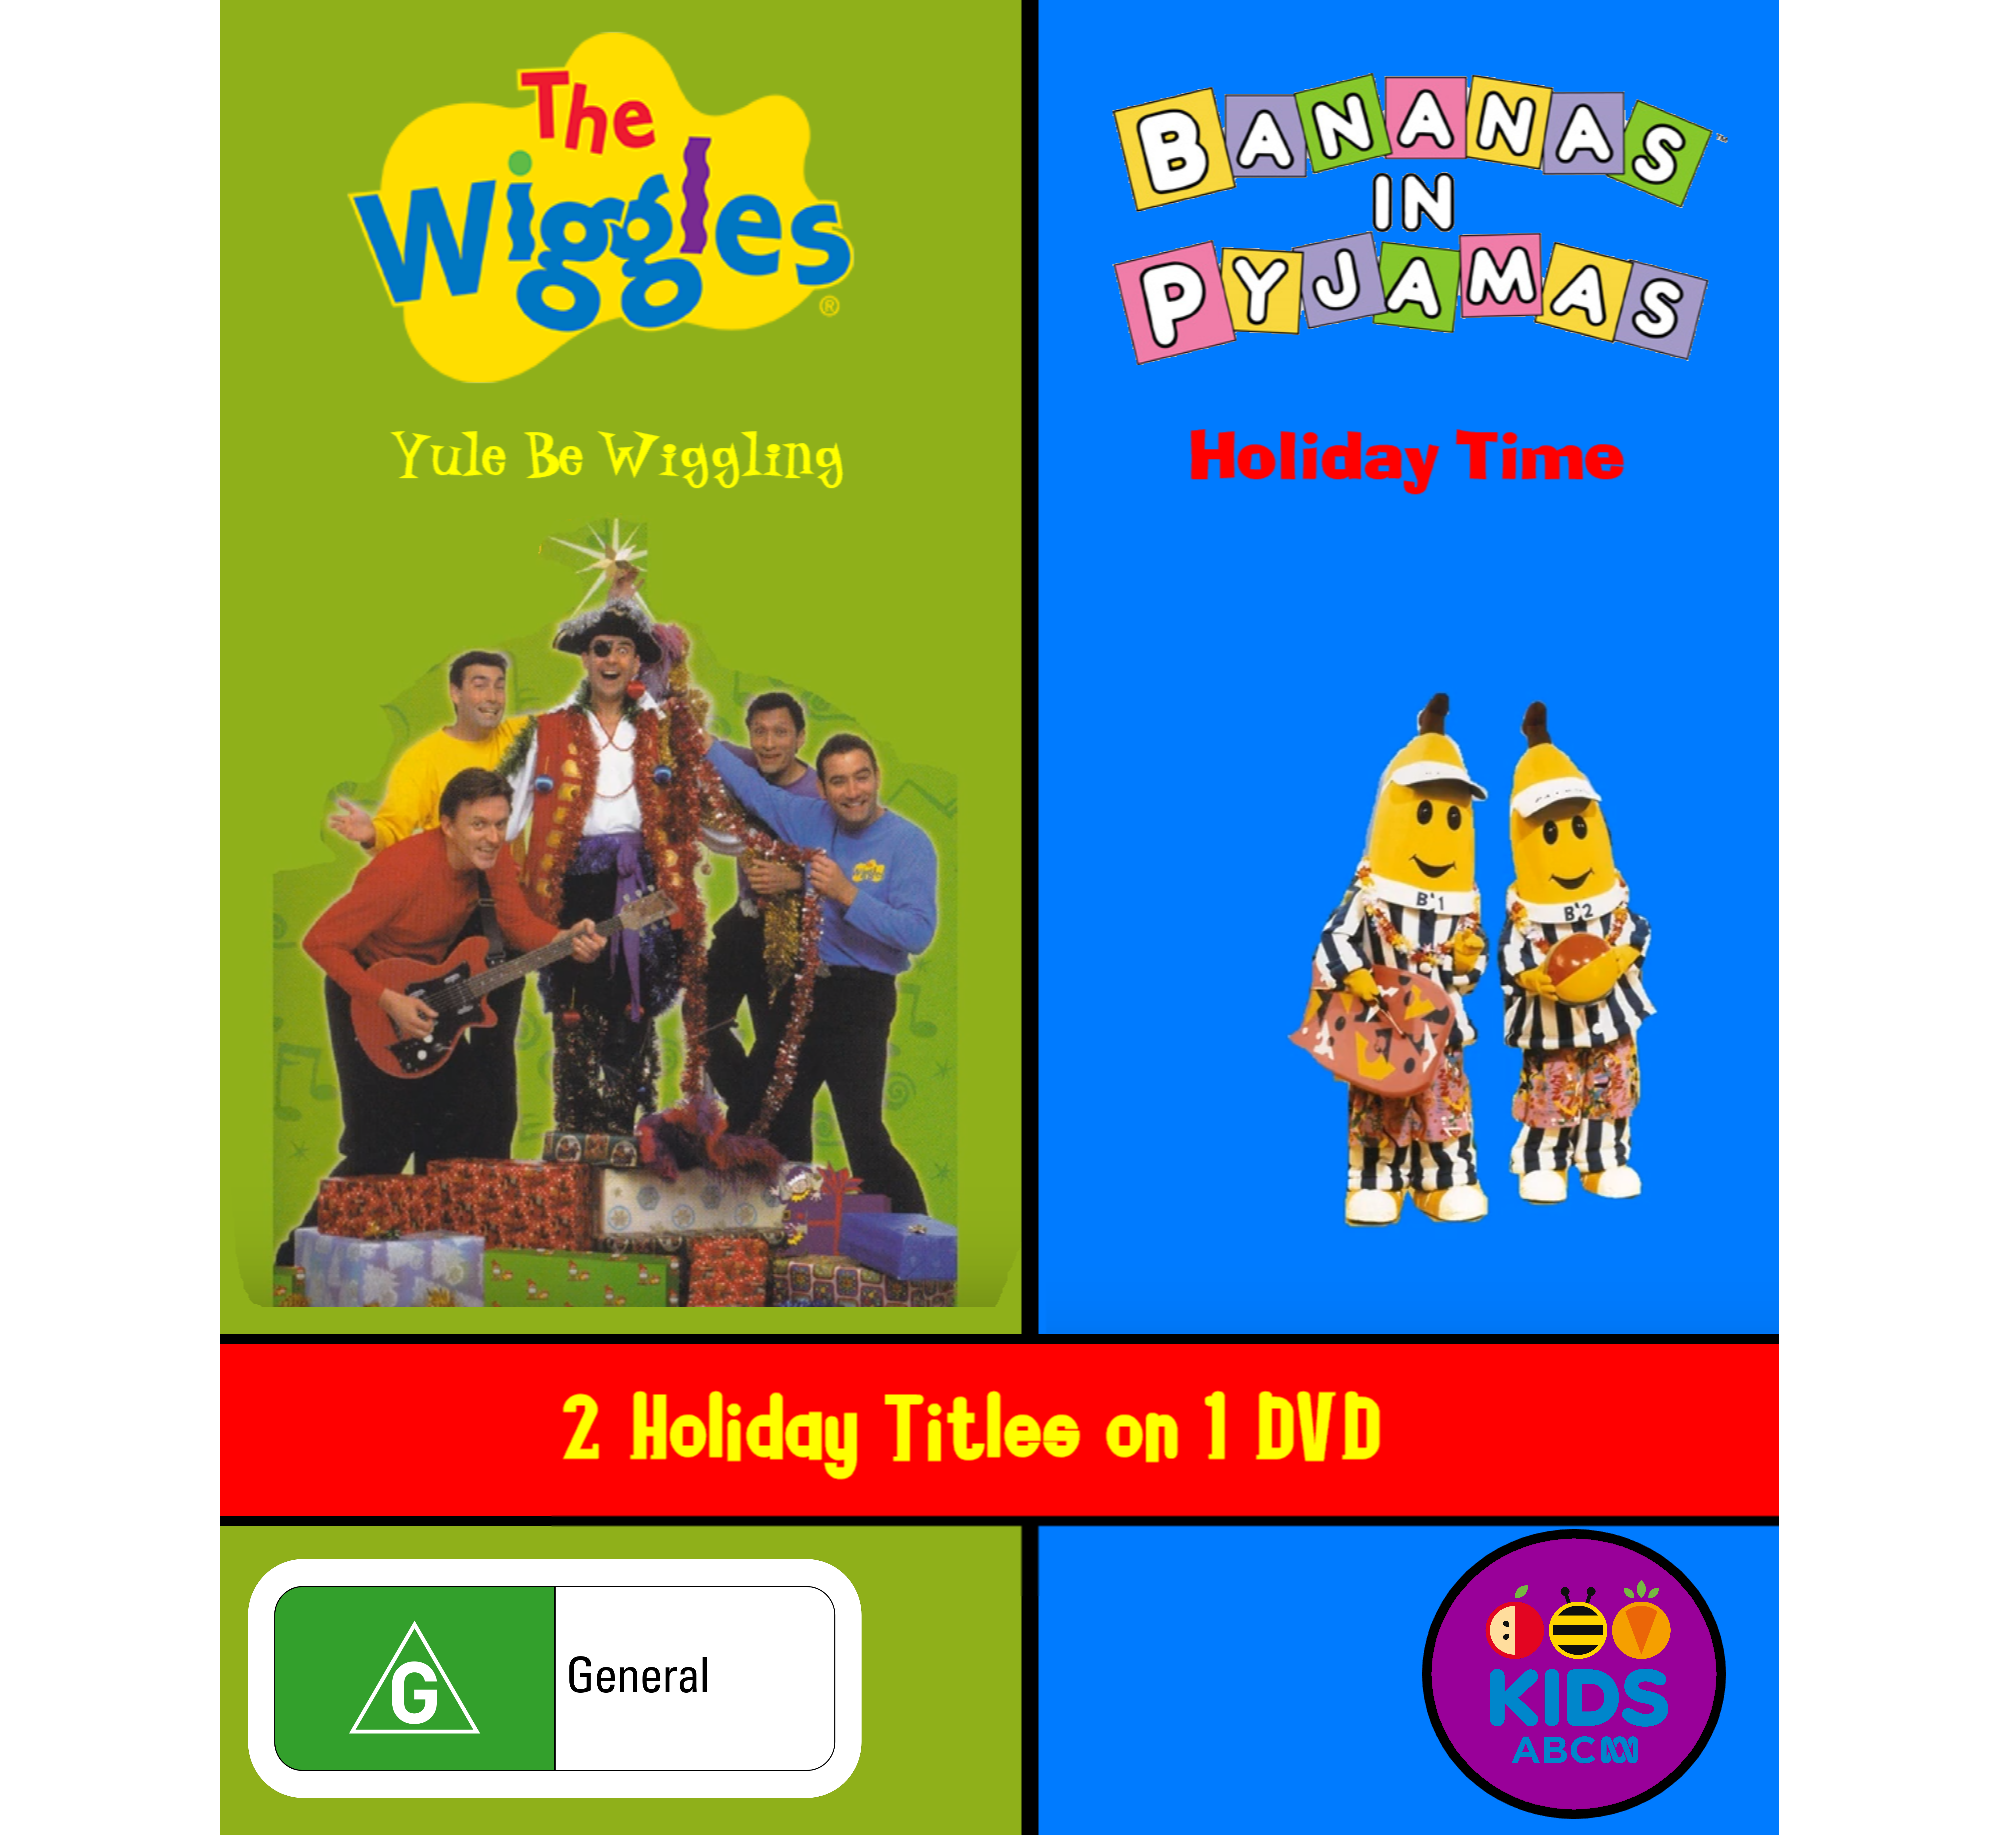 The Wiggles and Bananas in Pyjamas - Yule Be Wiggling and Holiday Time